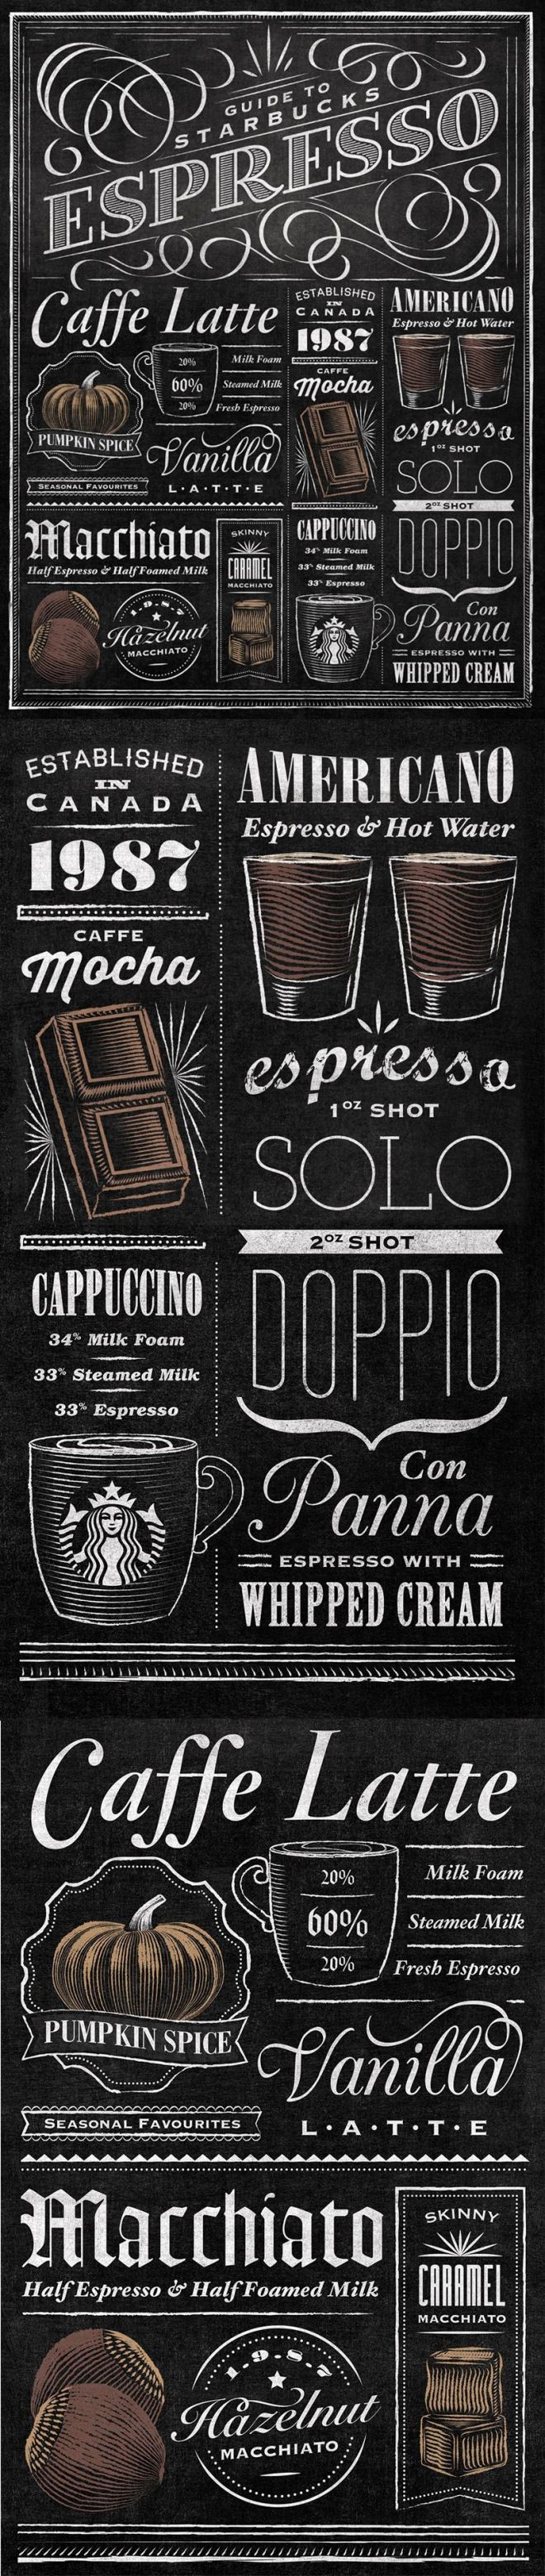 Guide to Starbuck's Espresso - beautiful and informative!